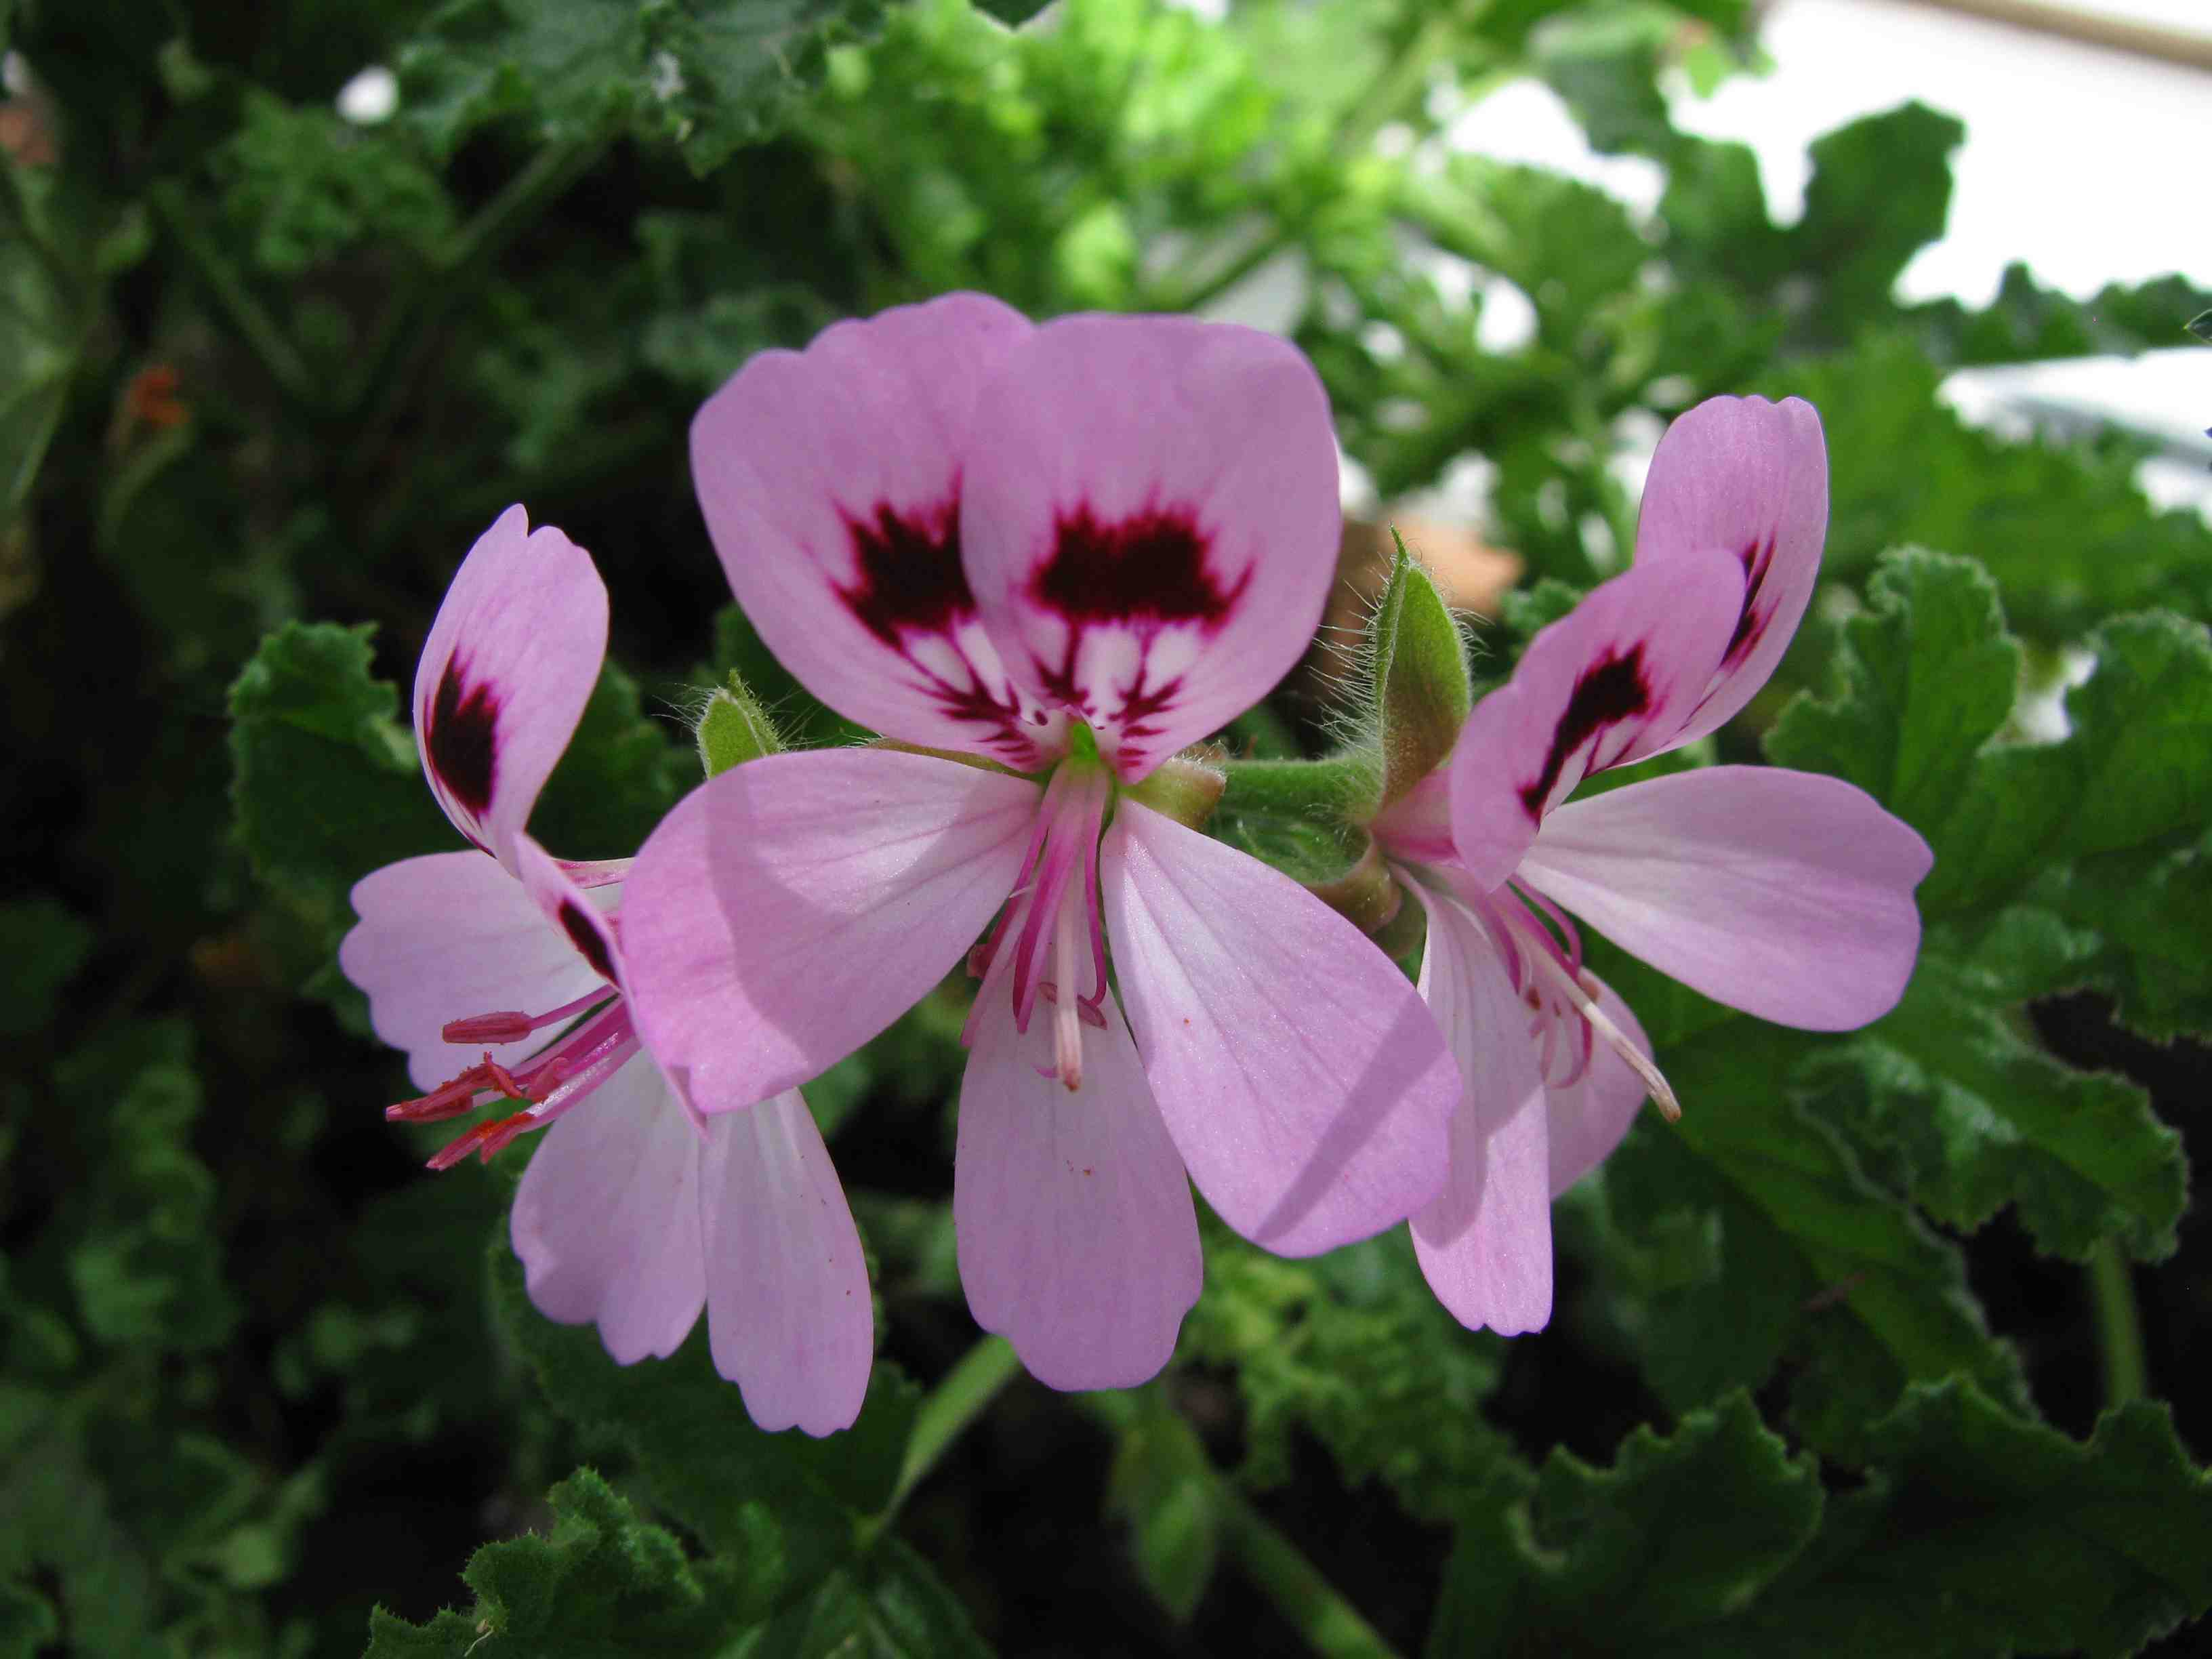 Geranium Or Pelargonium Let S Stop The Confusion Laidback Gardener